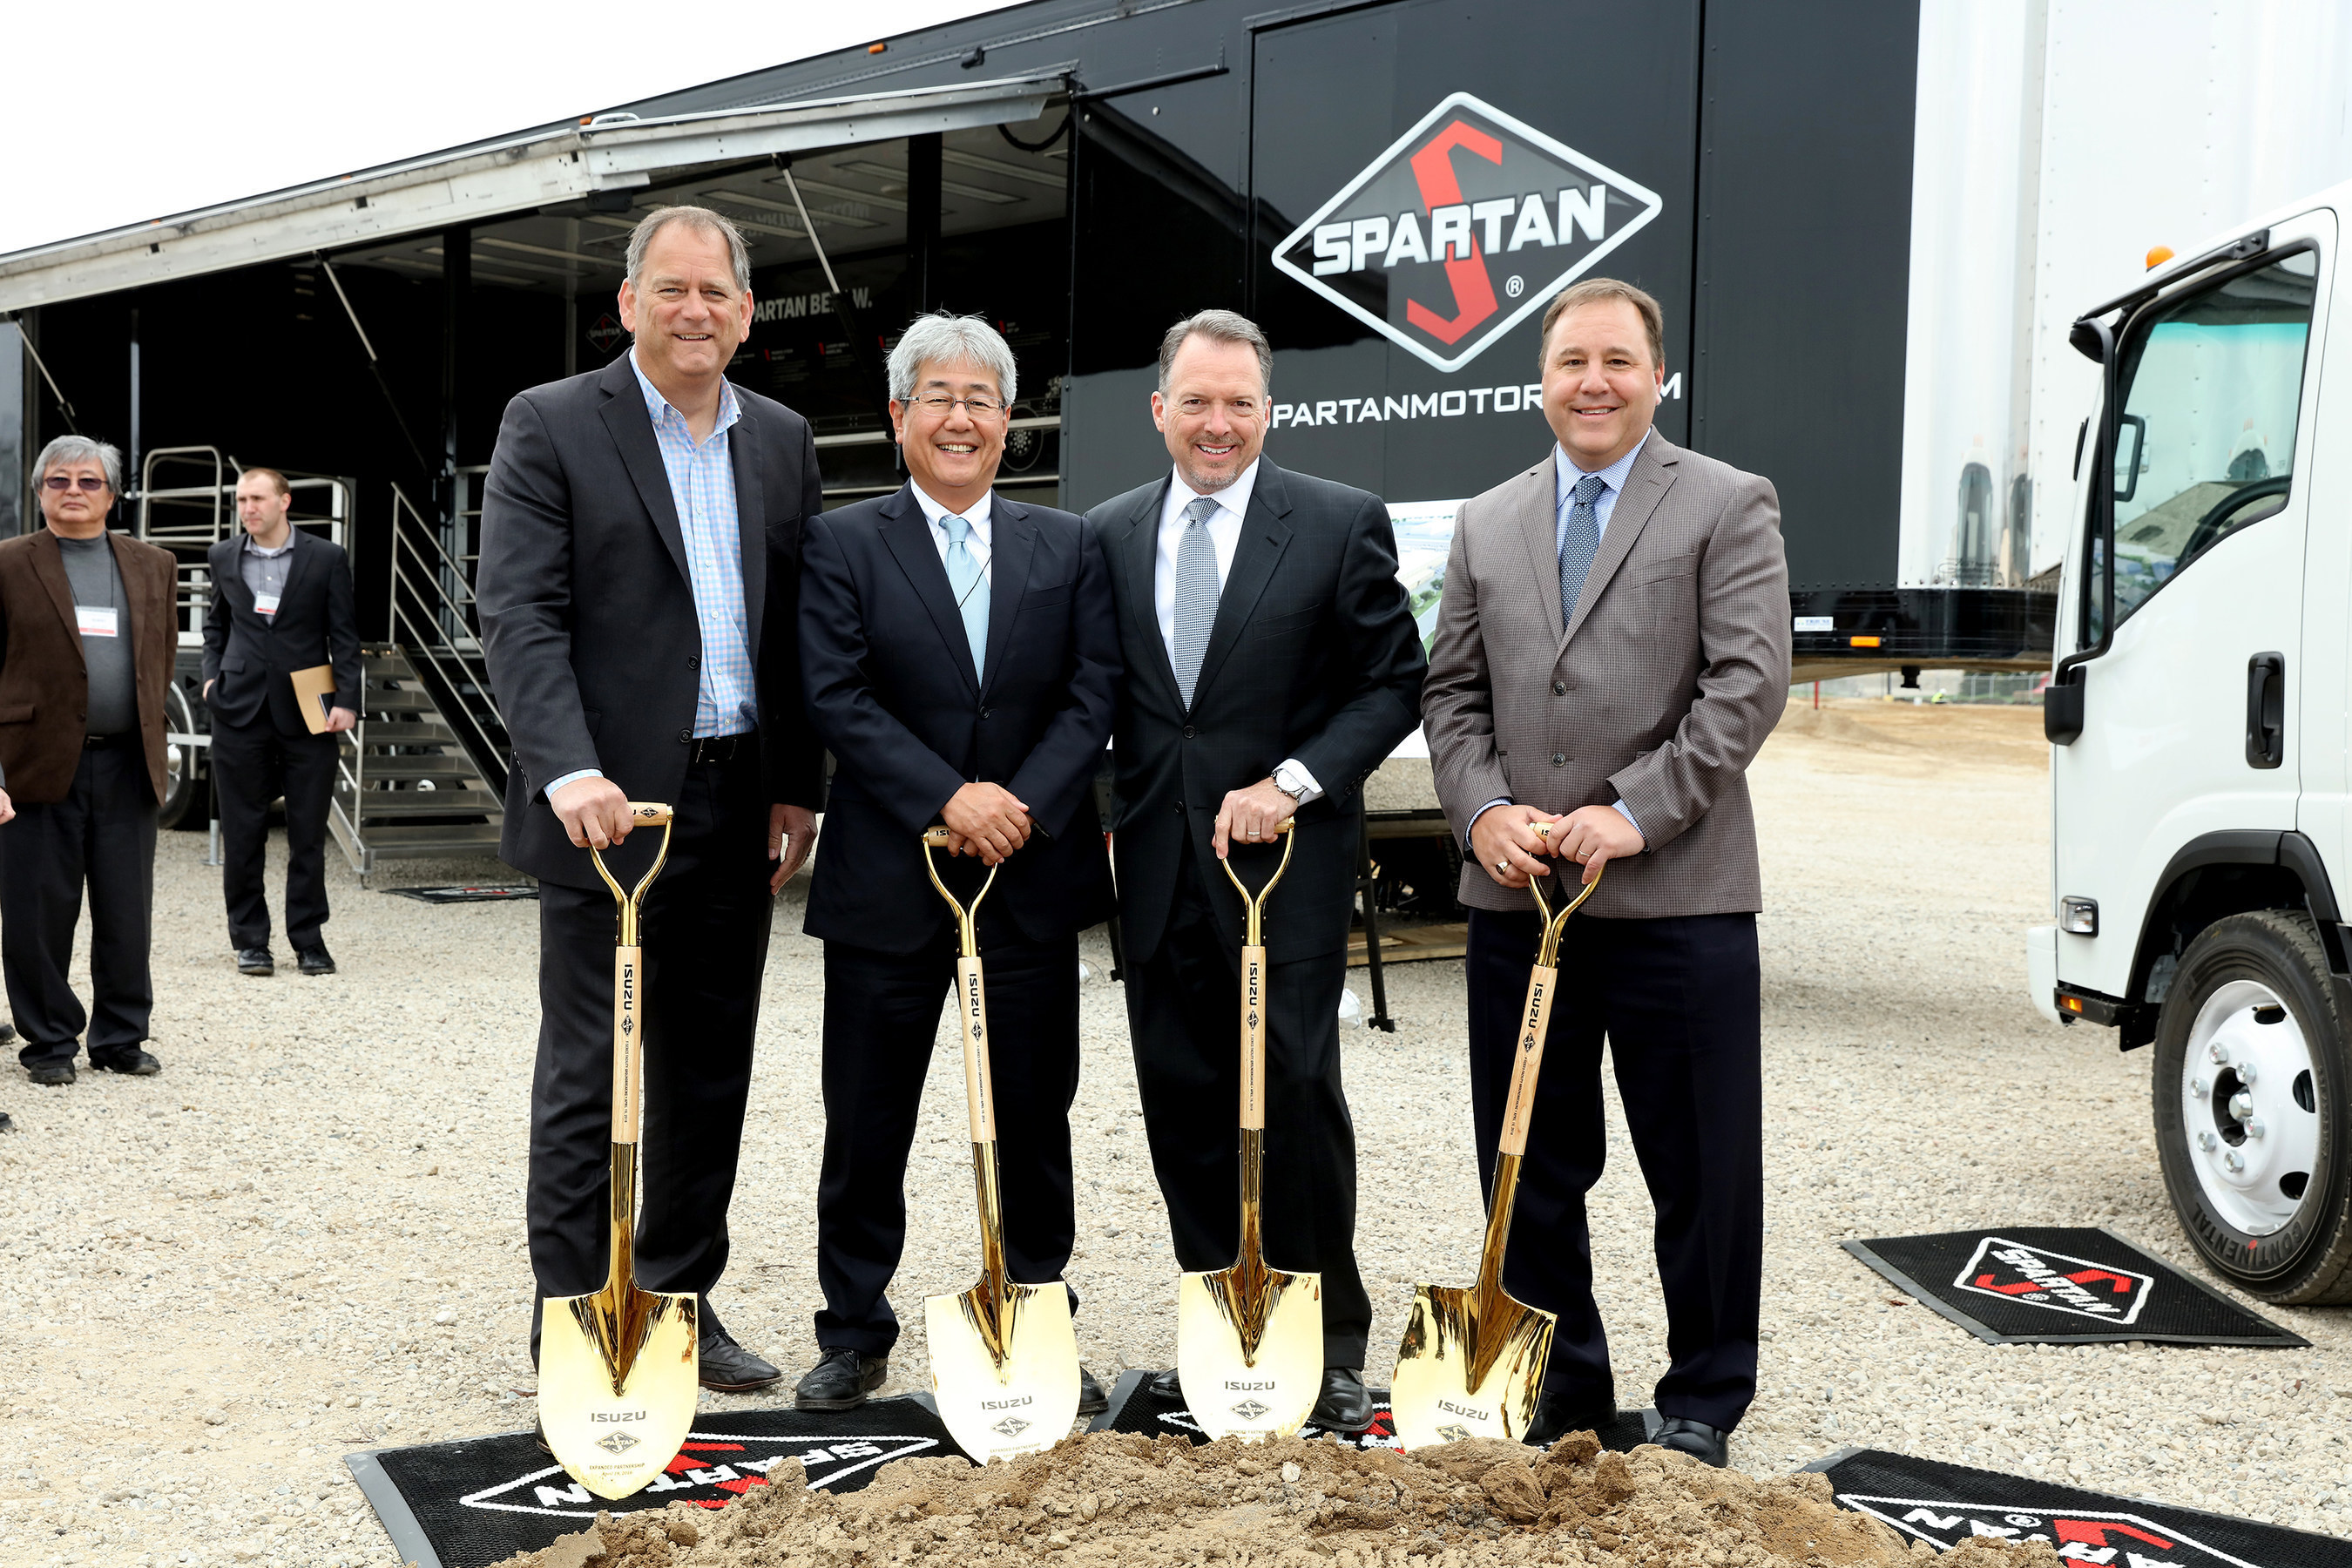 Pictured At The Spartan Motors And Isuzu North America Groundbreaking  Ceremony, From Left To Right